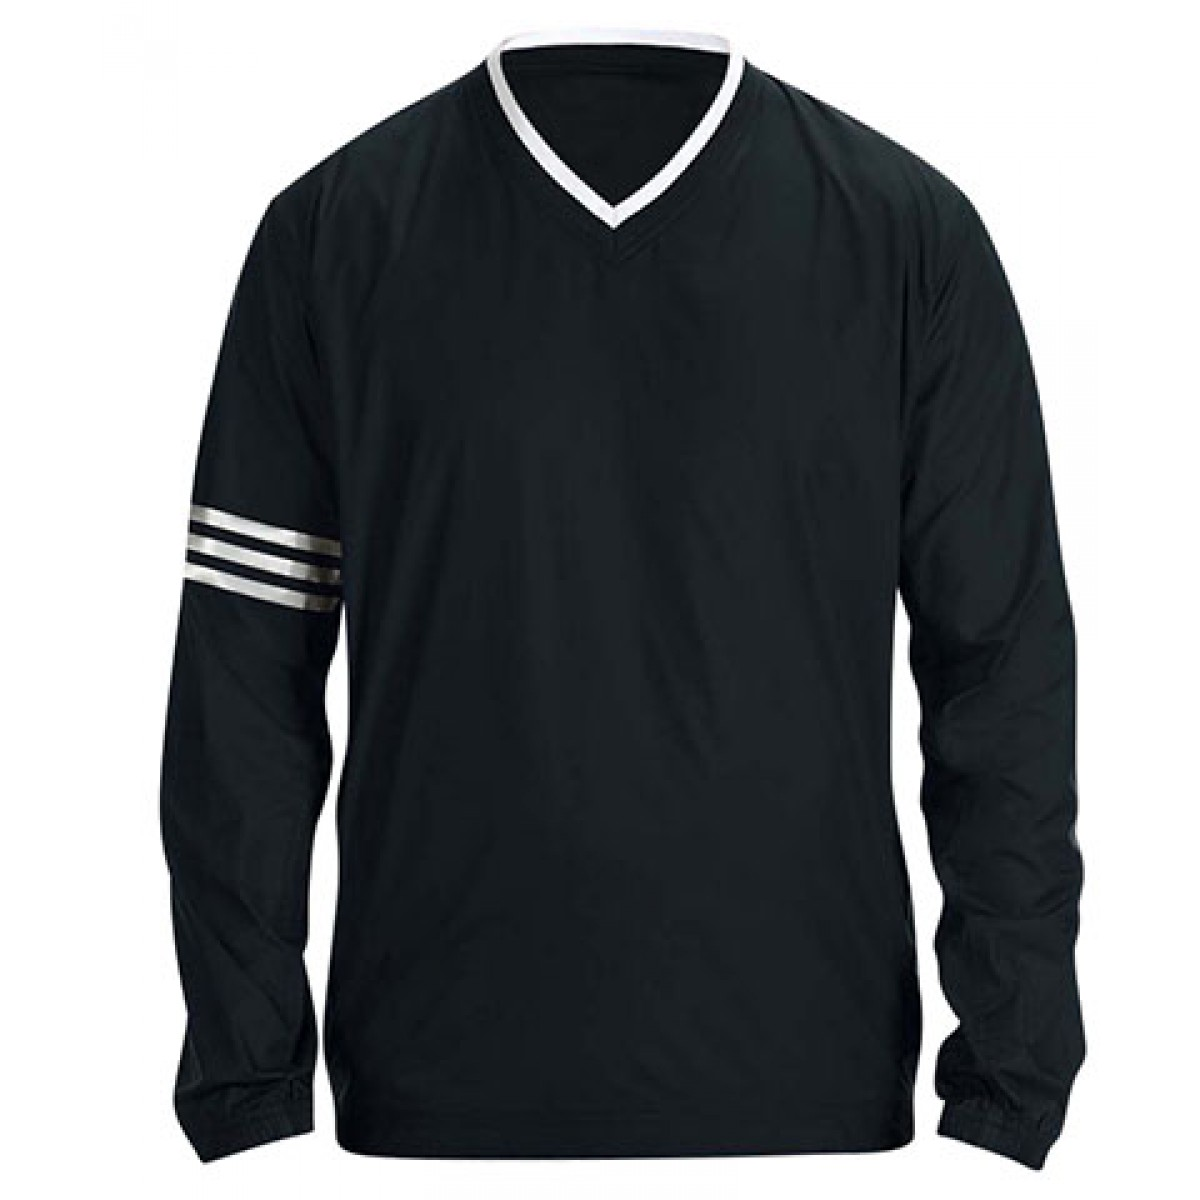 Adidas ClimaLite V-Neck Long Sleeve Wind Shirt-Black-S